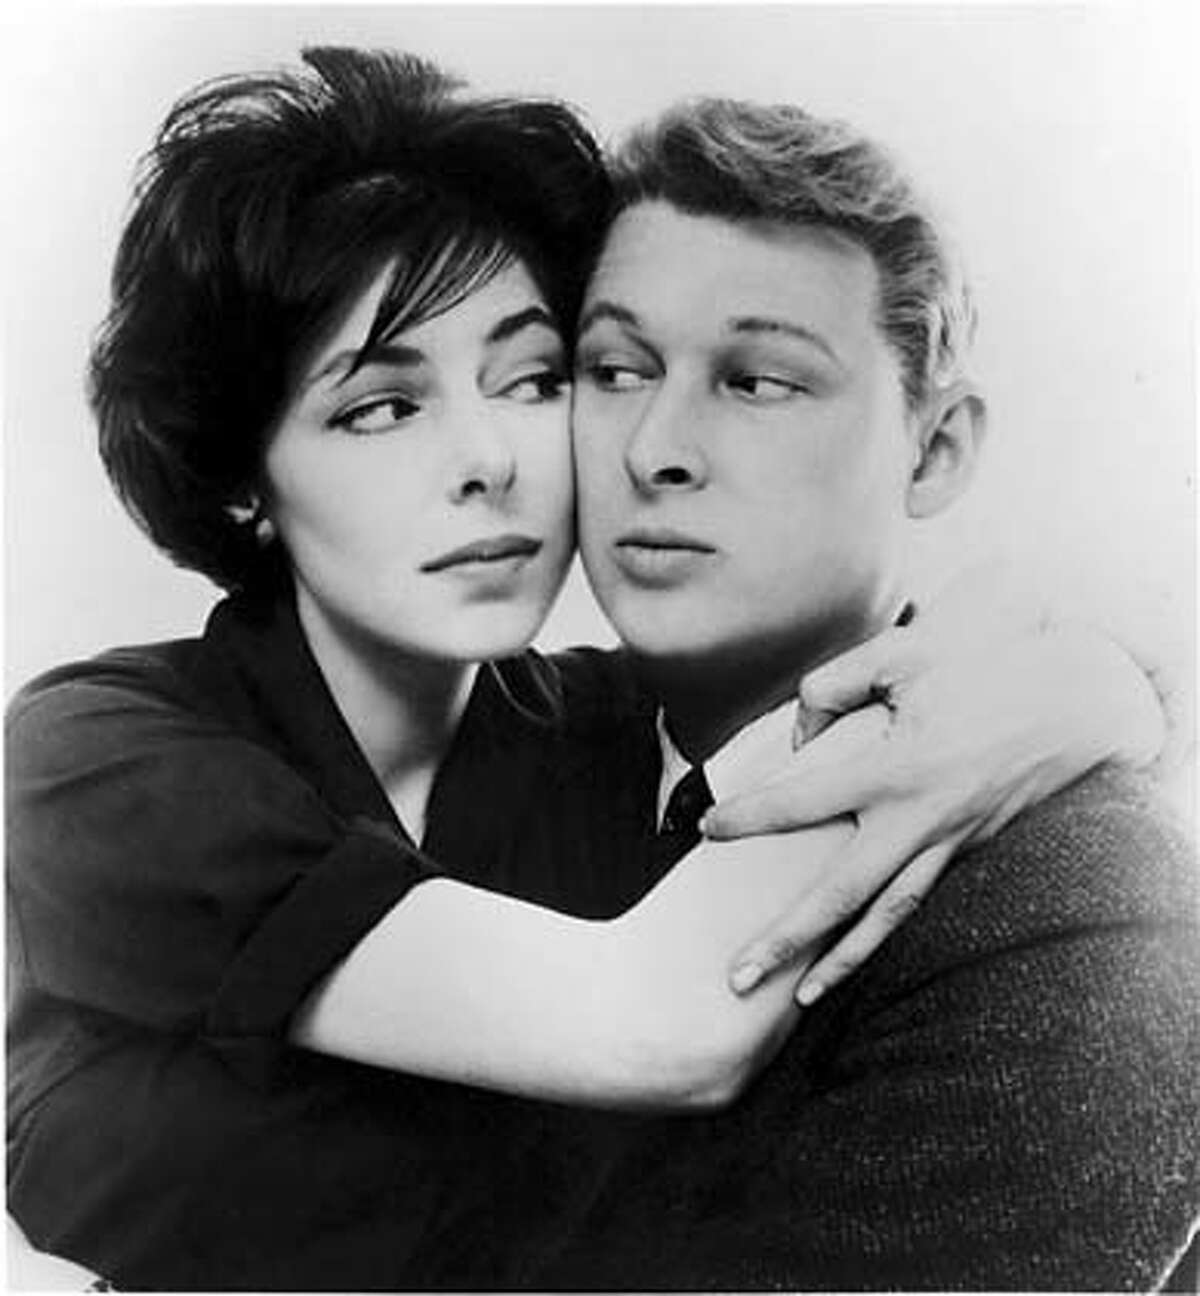 At the crest of their popularity in 1962, Elaine May and Mike Nichols broke up their influential comedy duo.